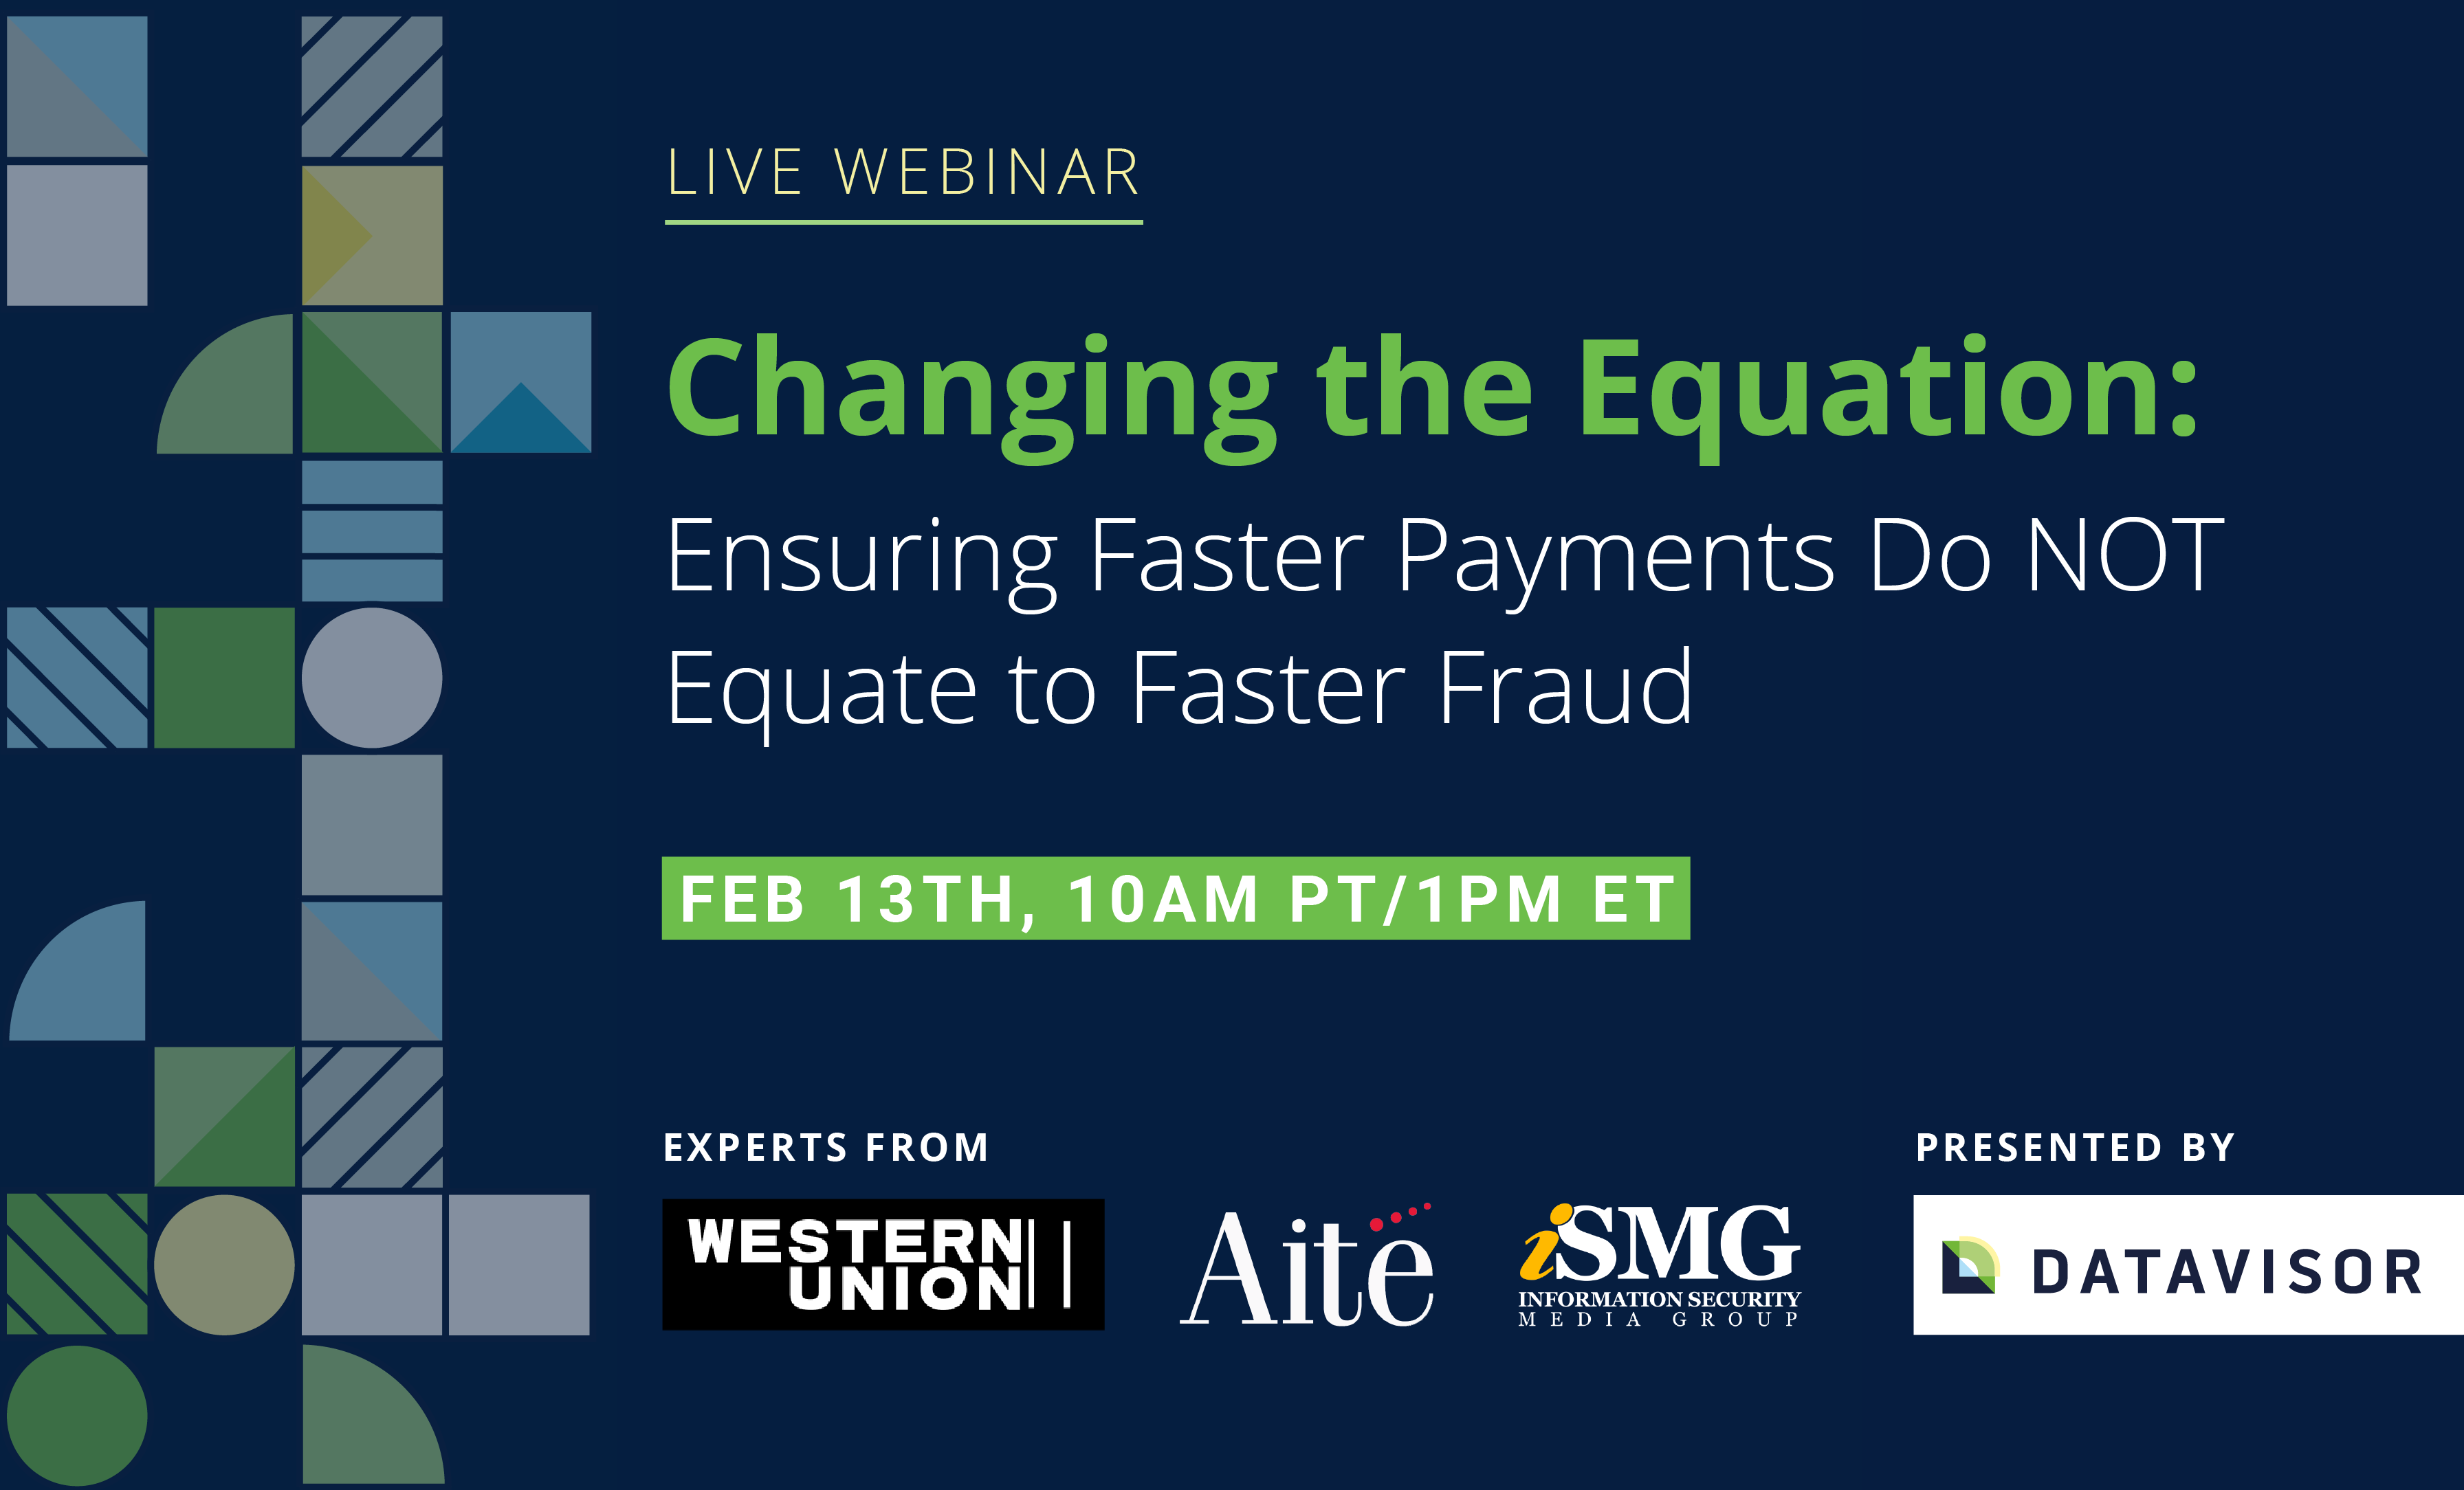 Live Webinar | Changing the Equation: Ensuring Faster Payments Do NOT Equate to Faster Fraud